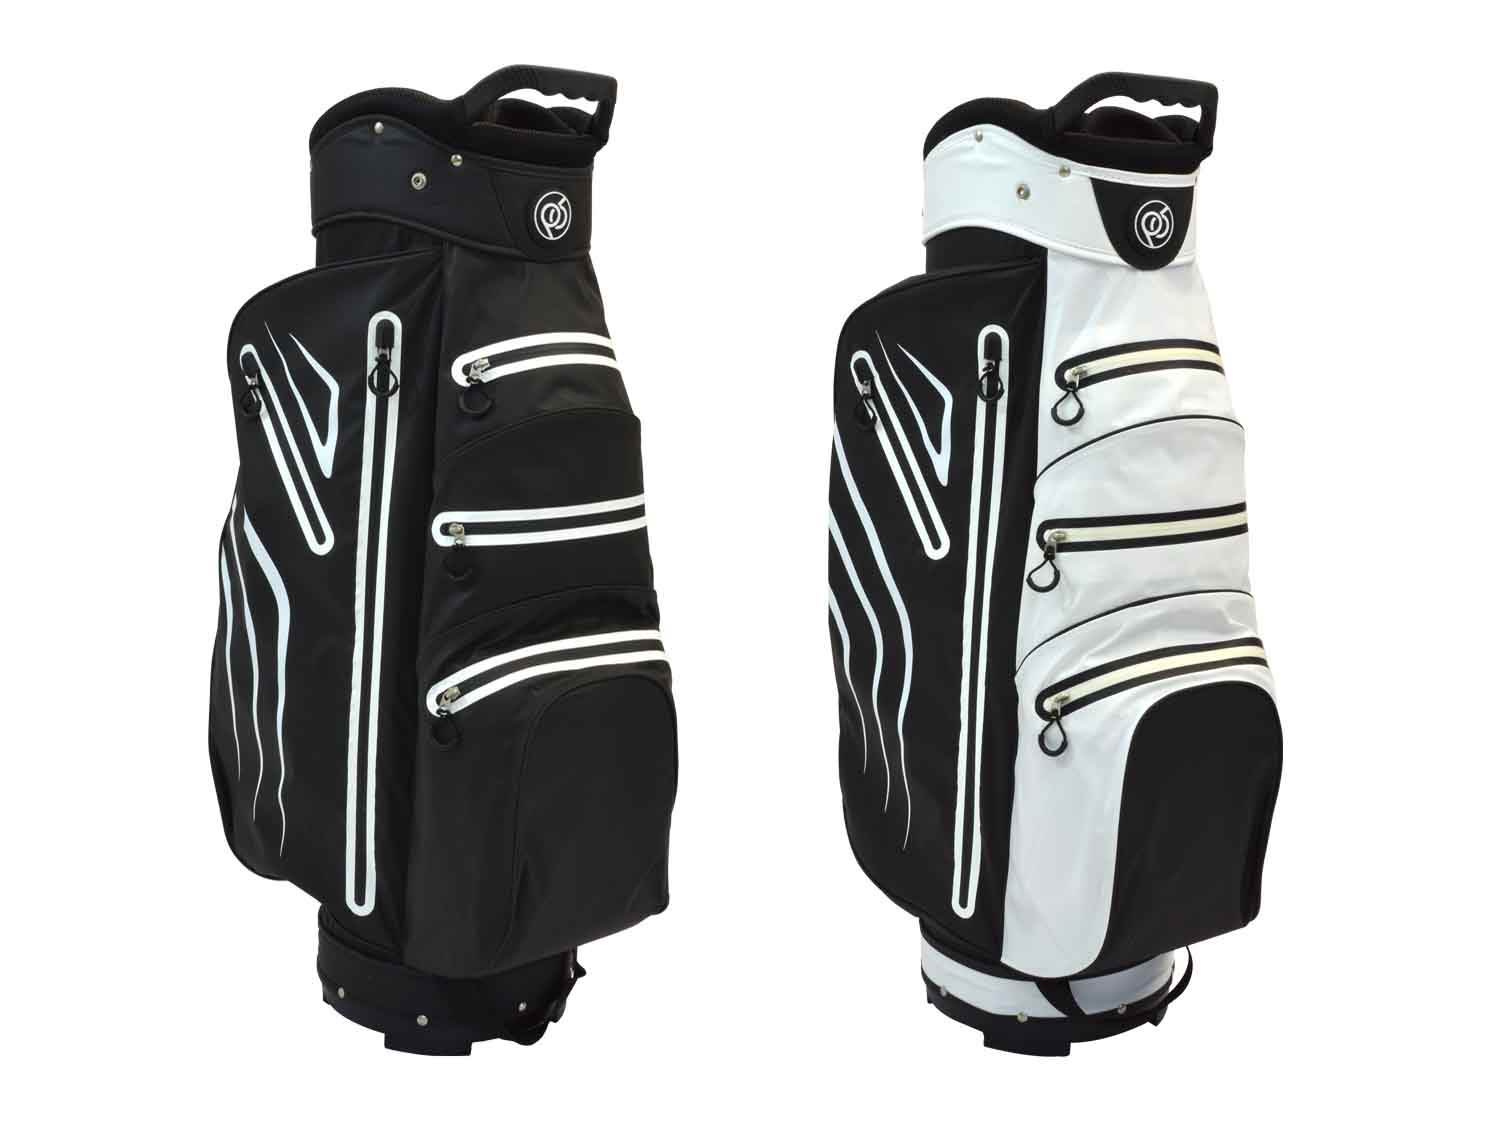 Bug Waterproof Cart Bags